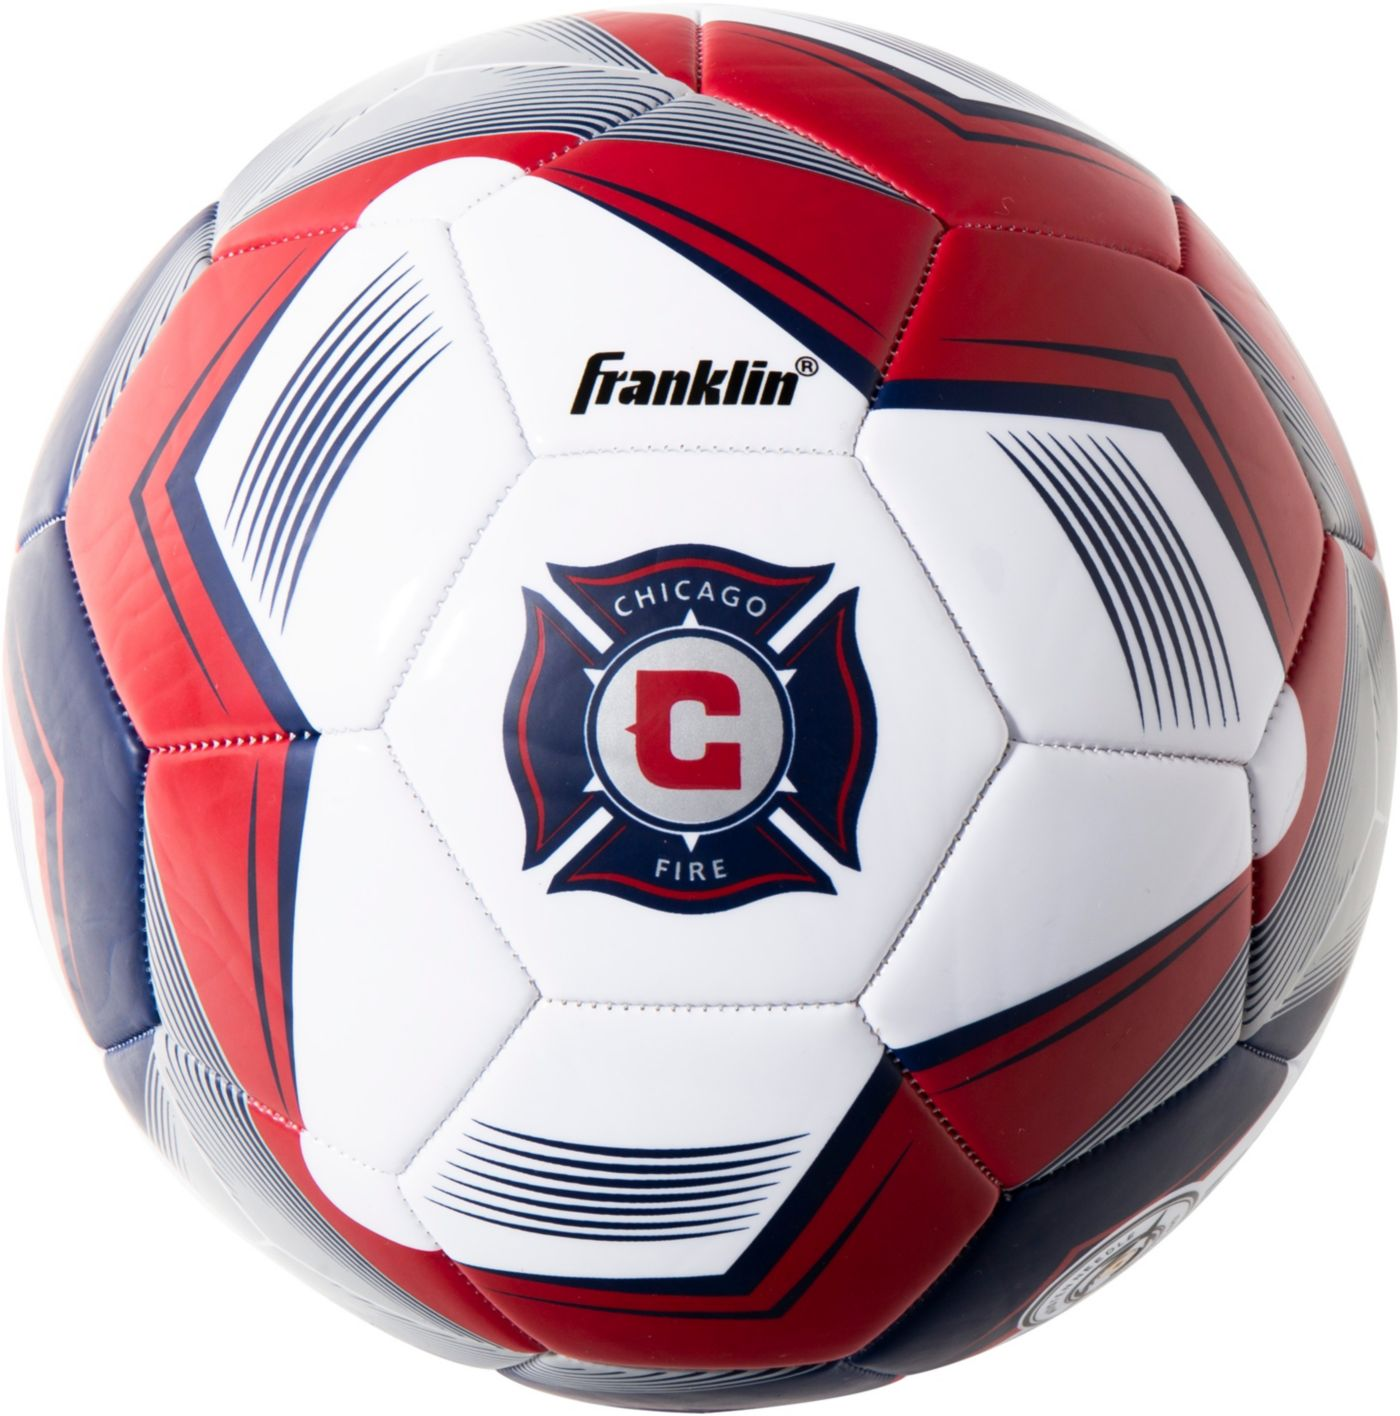 Franklin Chicago Fire Size 5 Soccer Ball